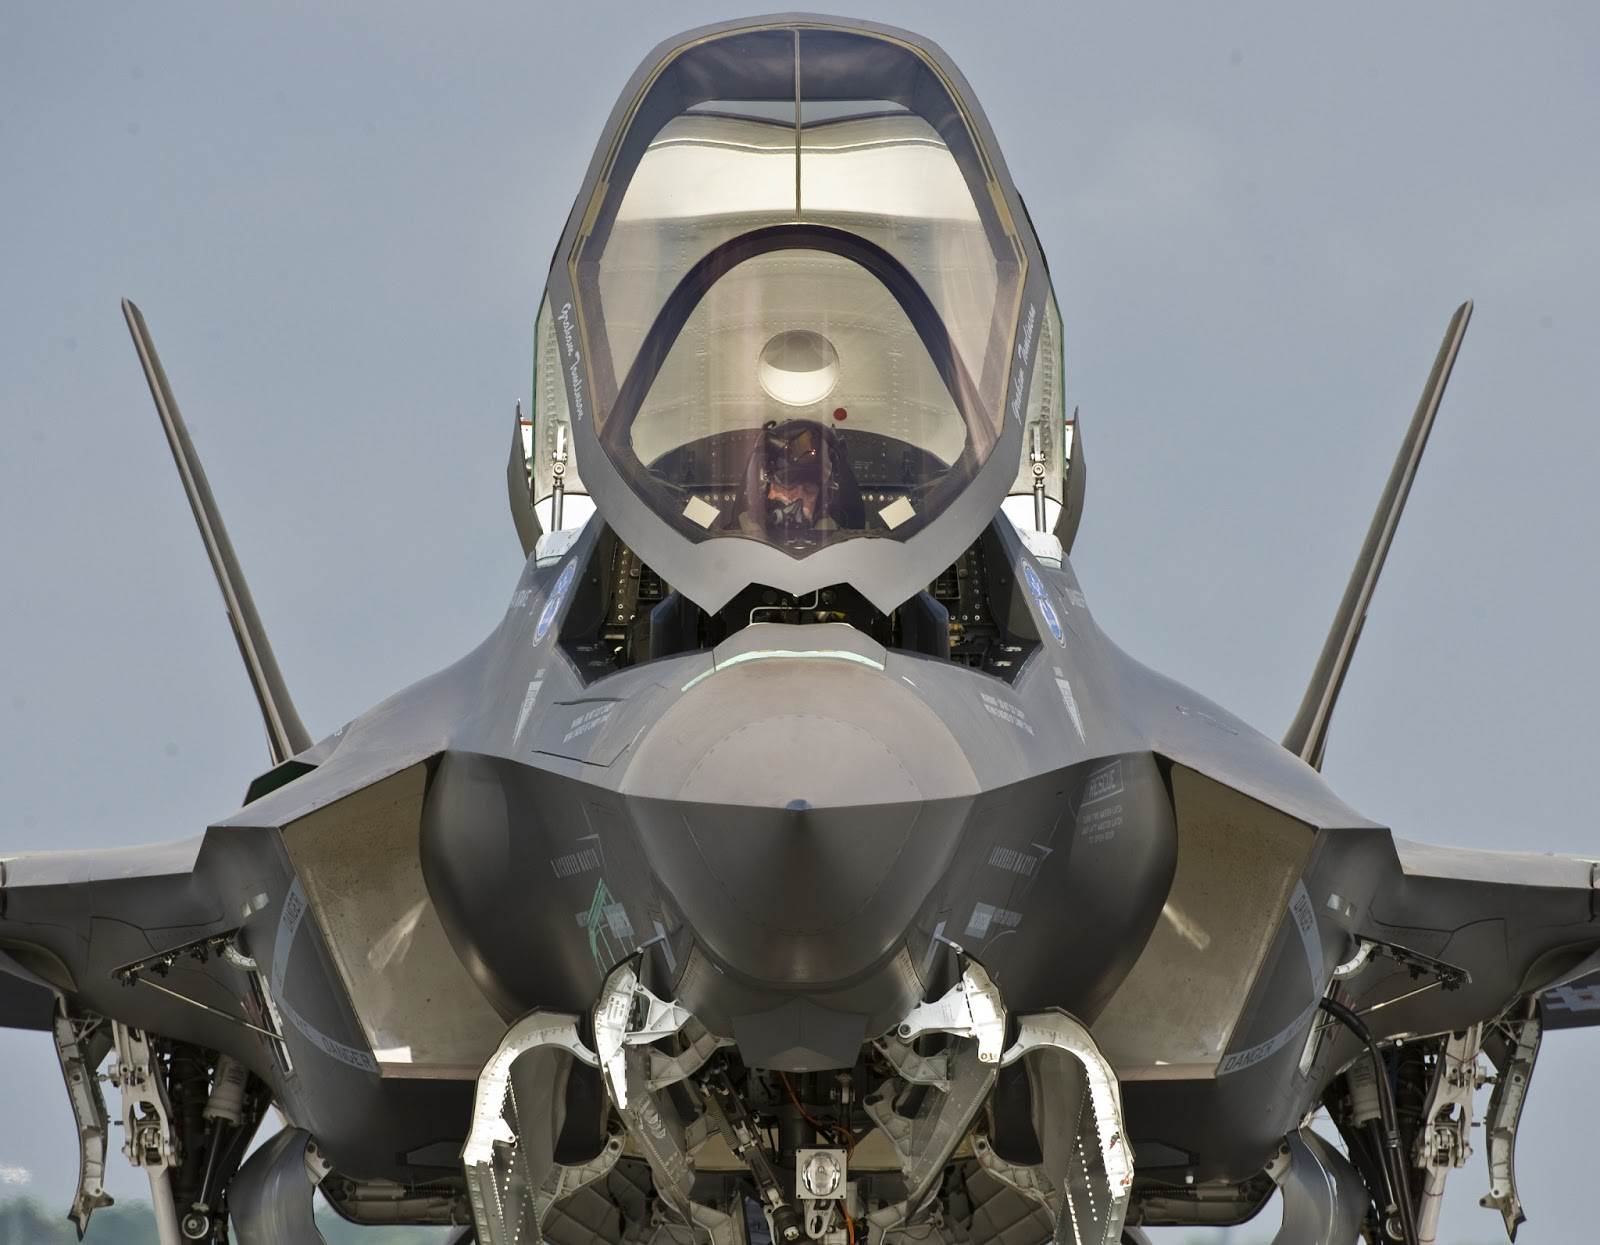 f-35 canopy opened f-35 operating cost f-35 cost & Pentagon And F-35 Operating Cost Aviation News 15 - AERONEF.NET